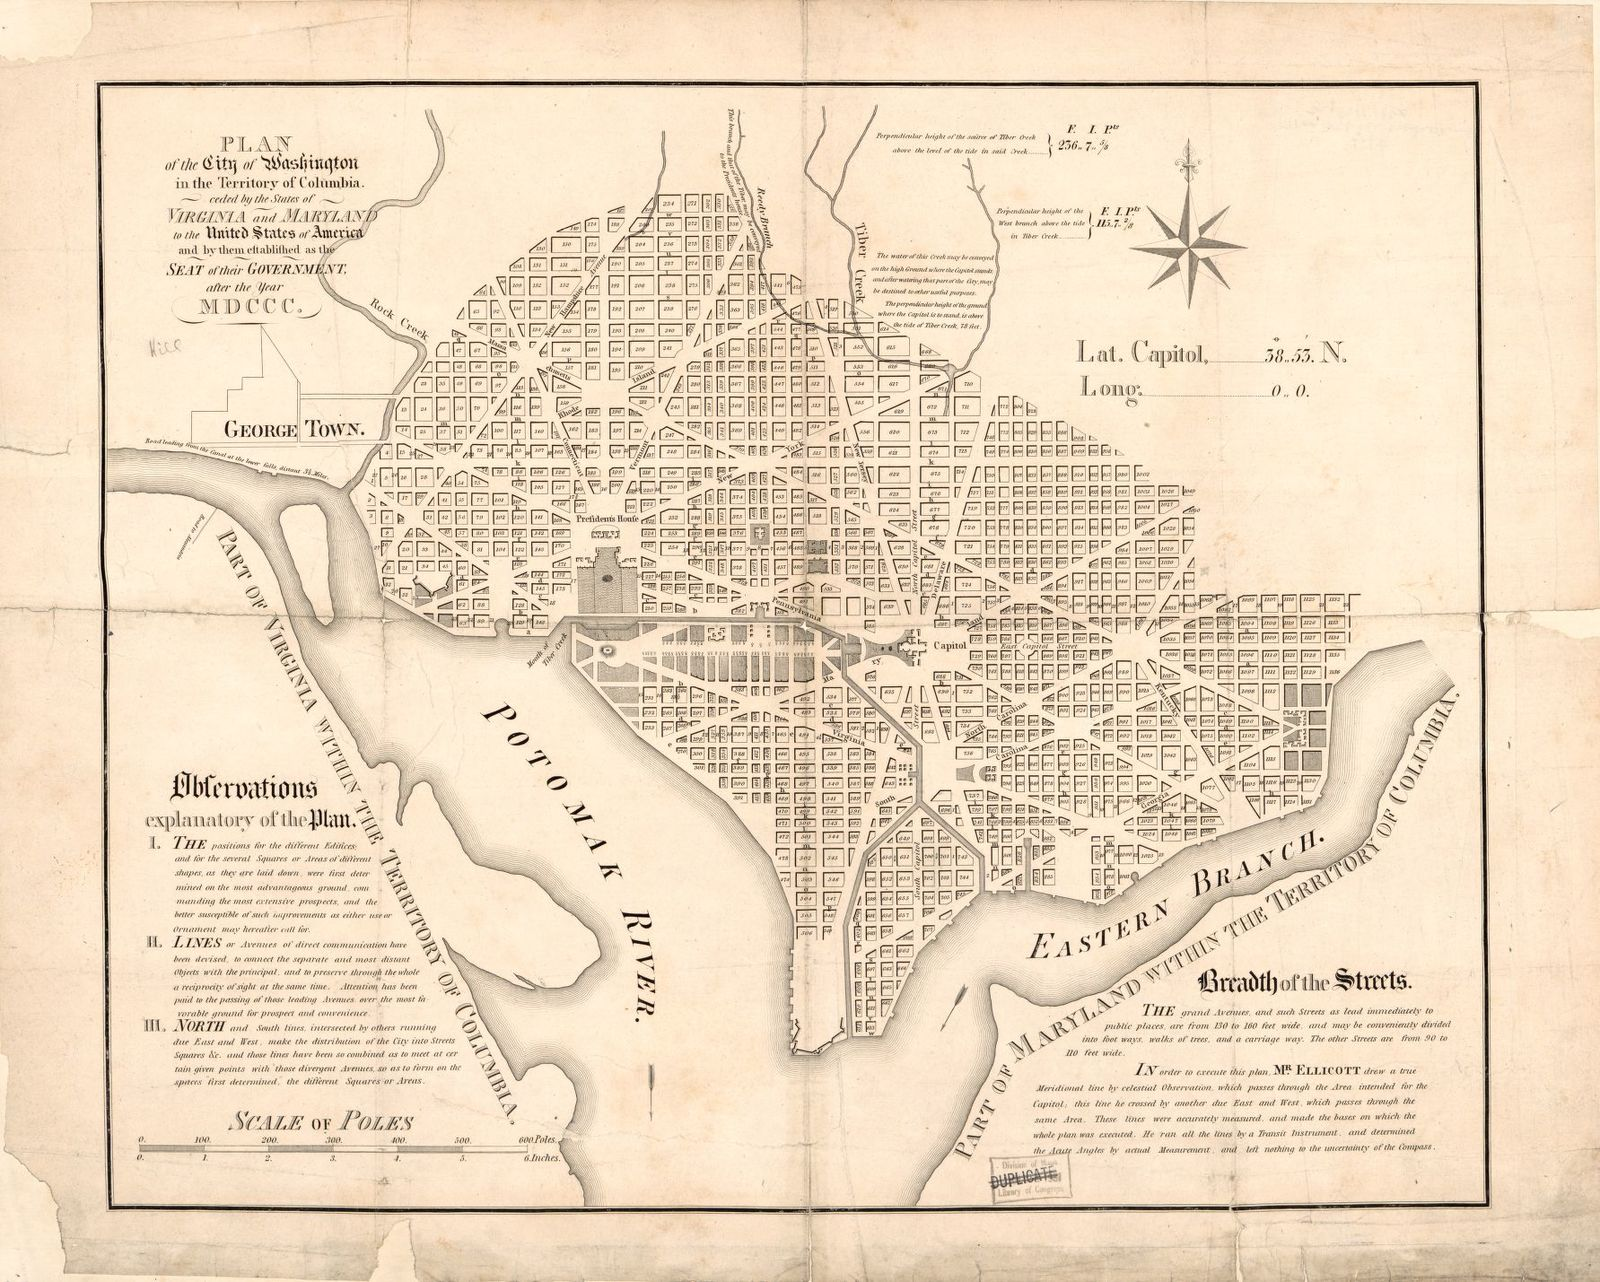 Map Of Virginia And Maryland Cities.Plan Of The City Of Washington In The Territory Of Columbia Ceded